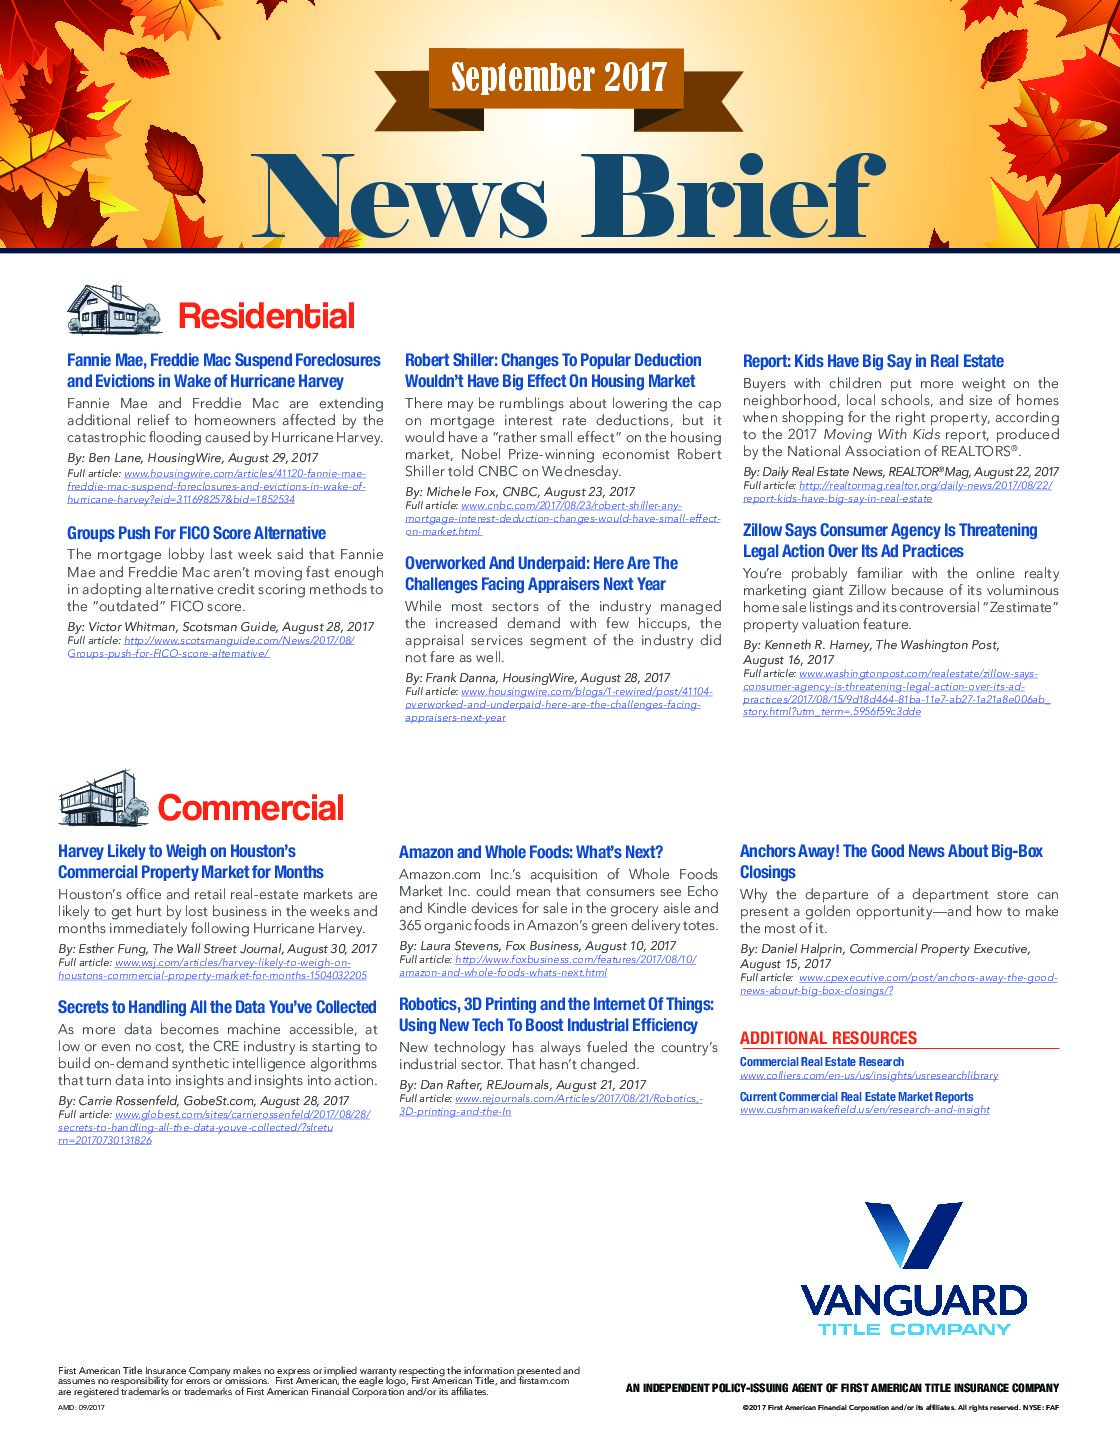 The September News Brief Has Arrived!